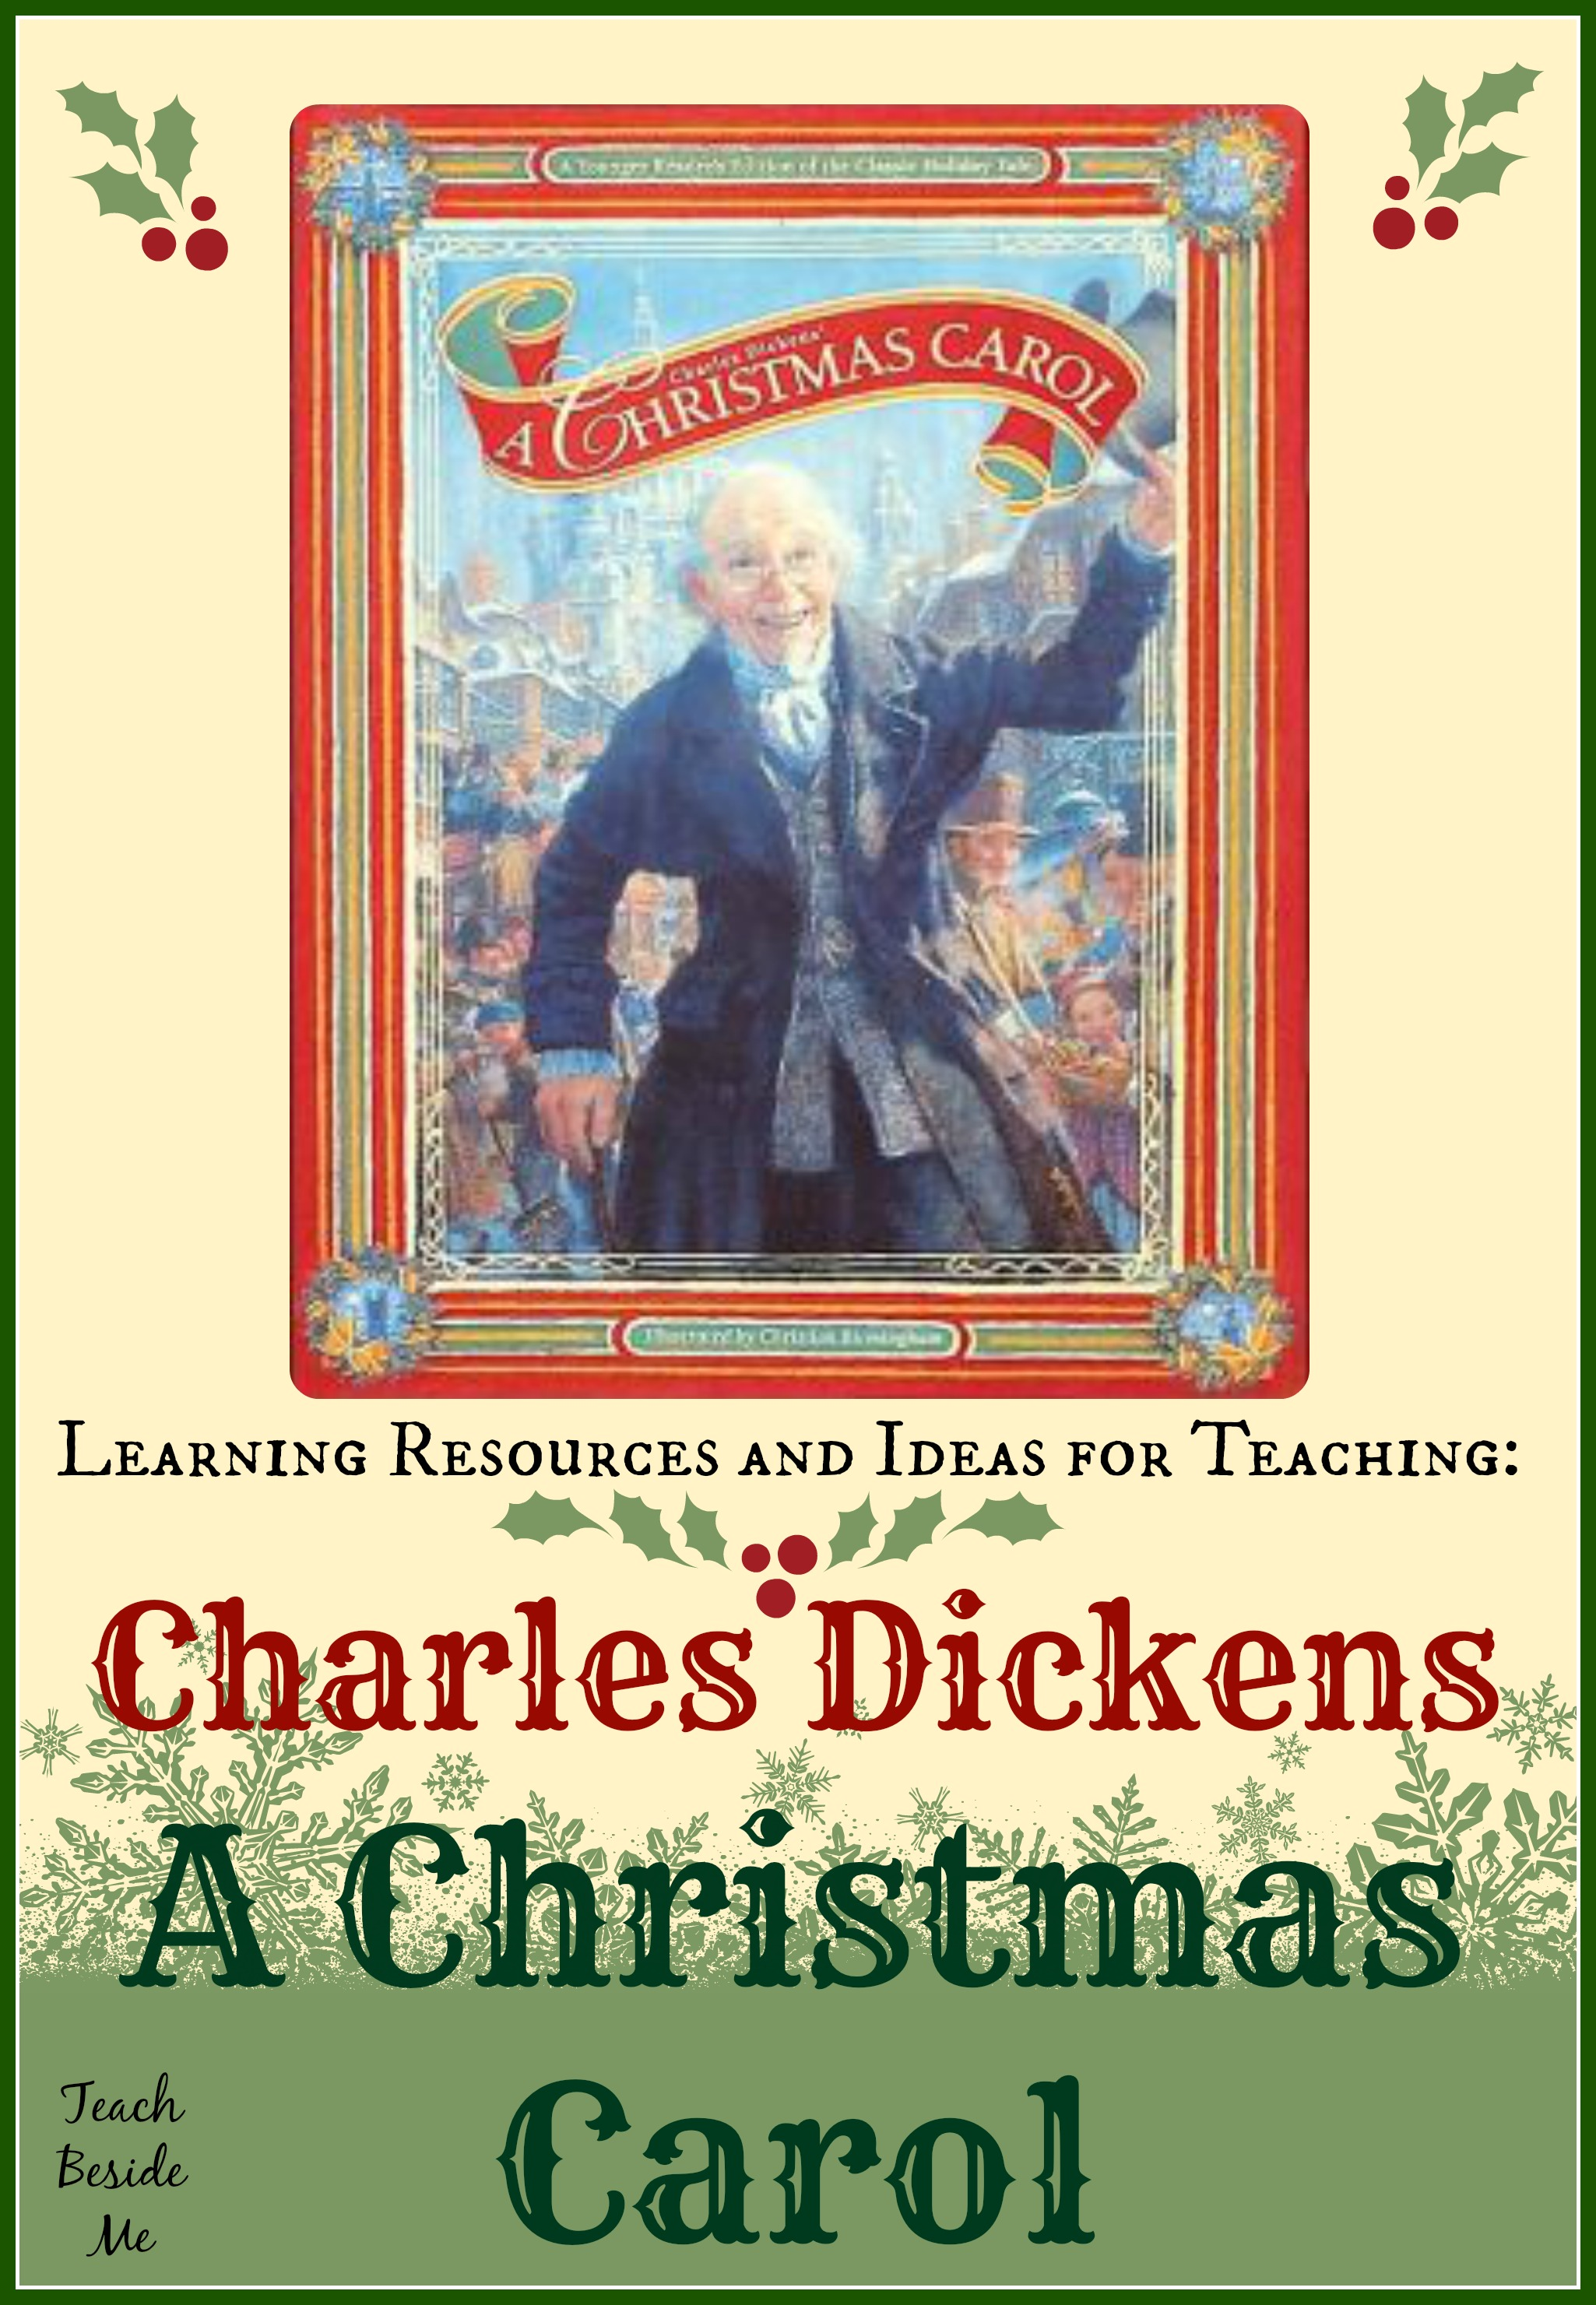 Charles Dickens A Christmas Carol Lesson Ideas